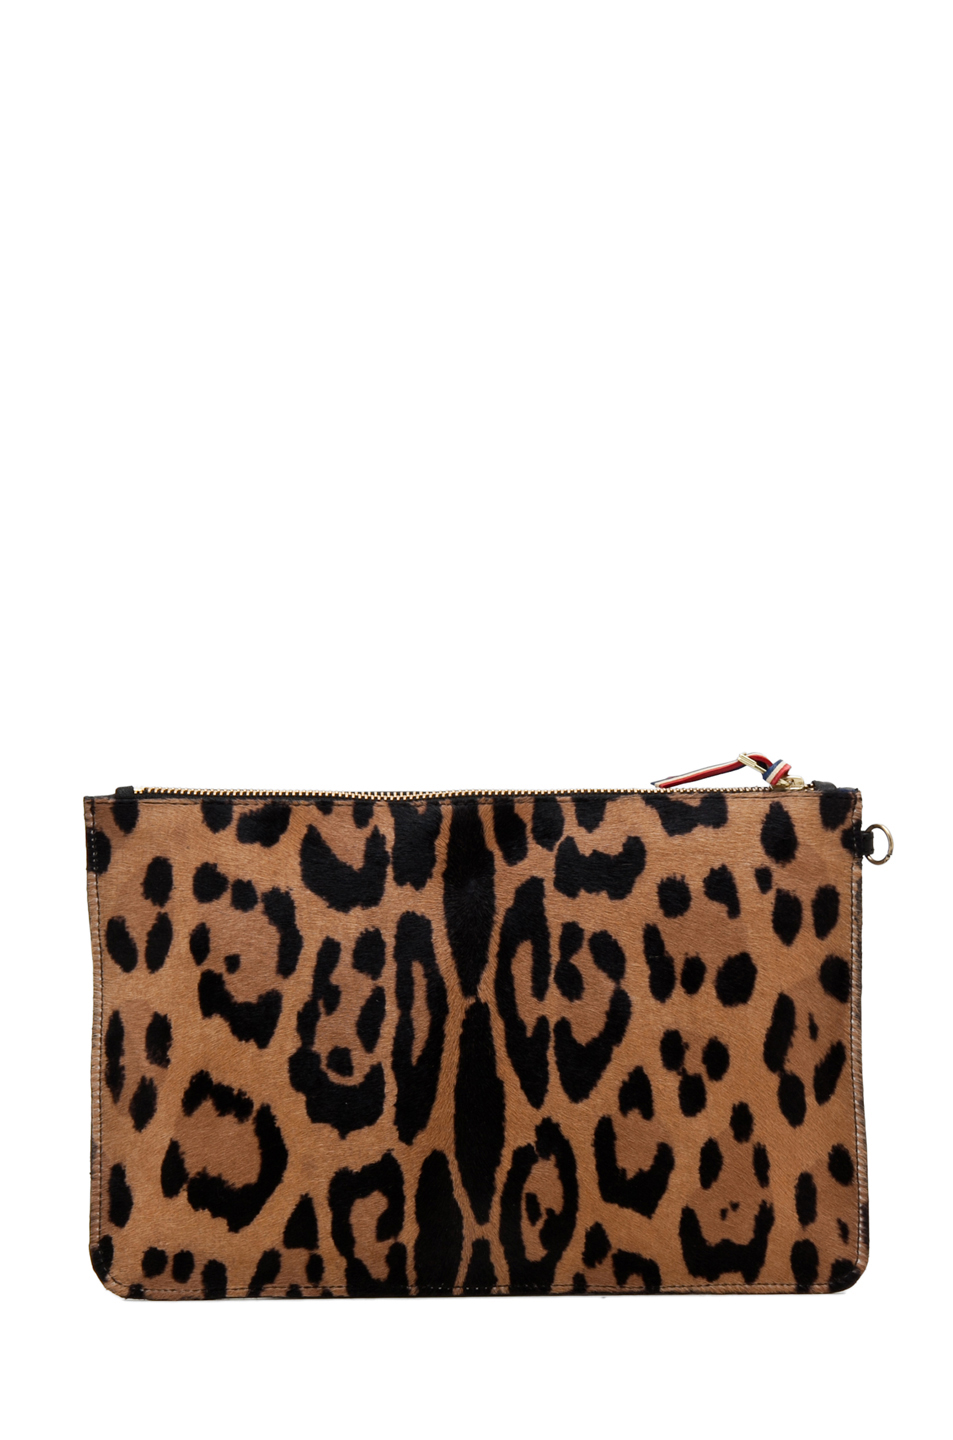 Jerome Dreyfuss|Large Popoche Clutch in Leopard & Multi